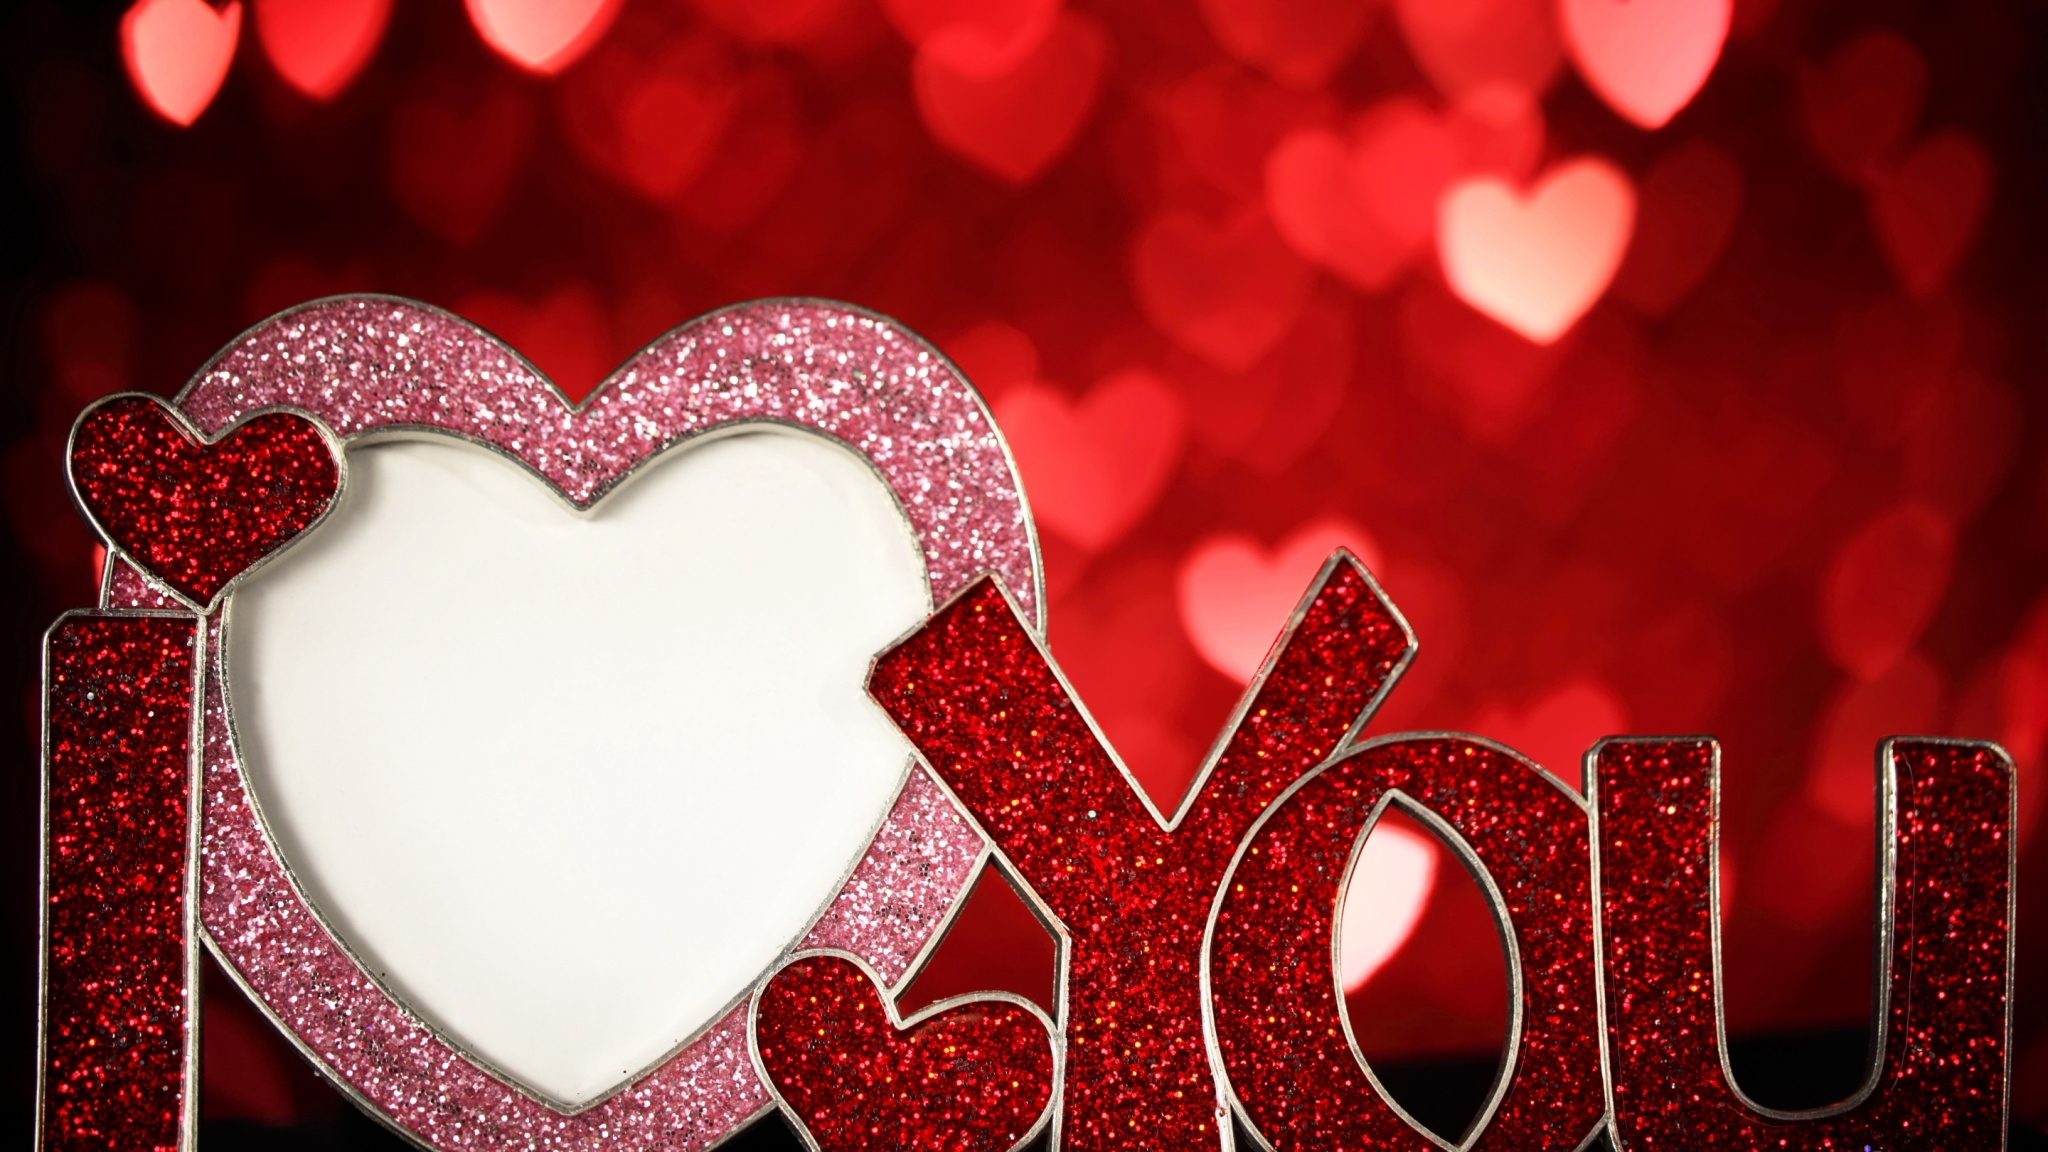 Wallpaper I Love You Heart : Heart I Love You Wallpapers - 2048x1152 - 642261